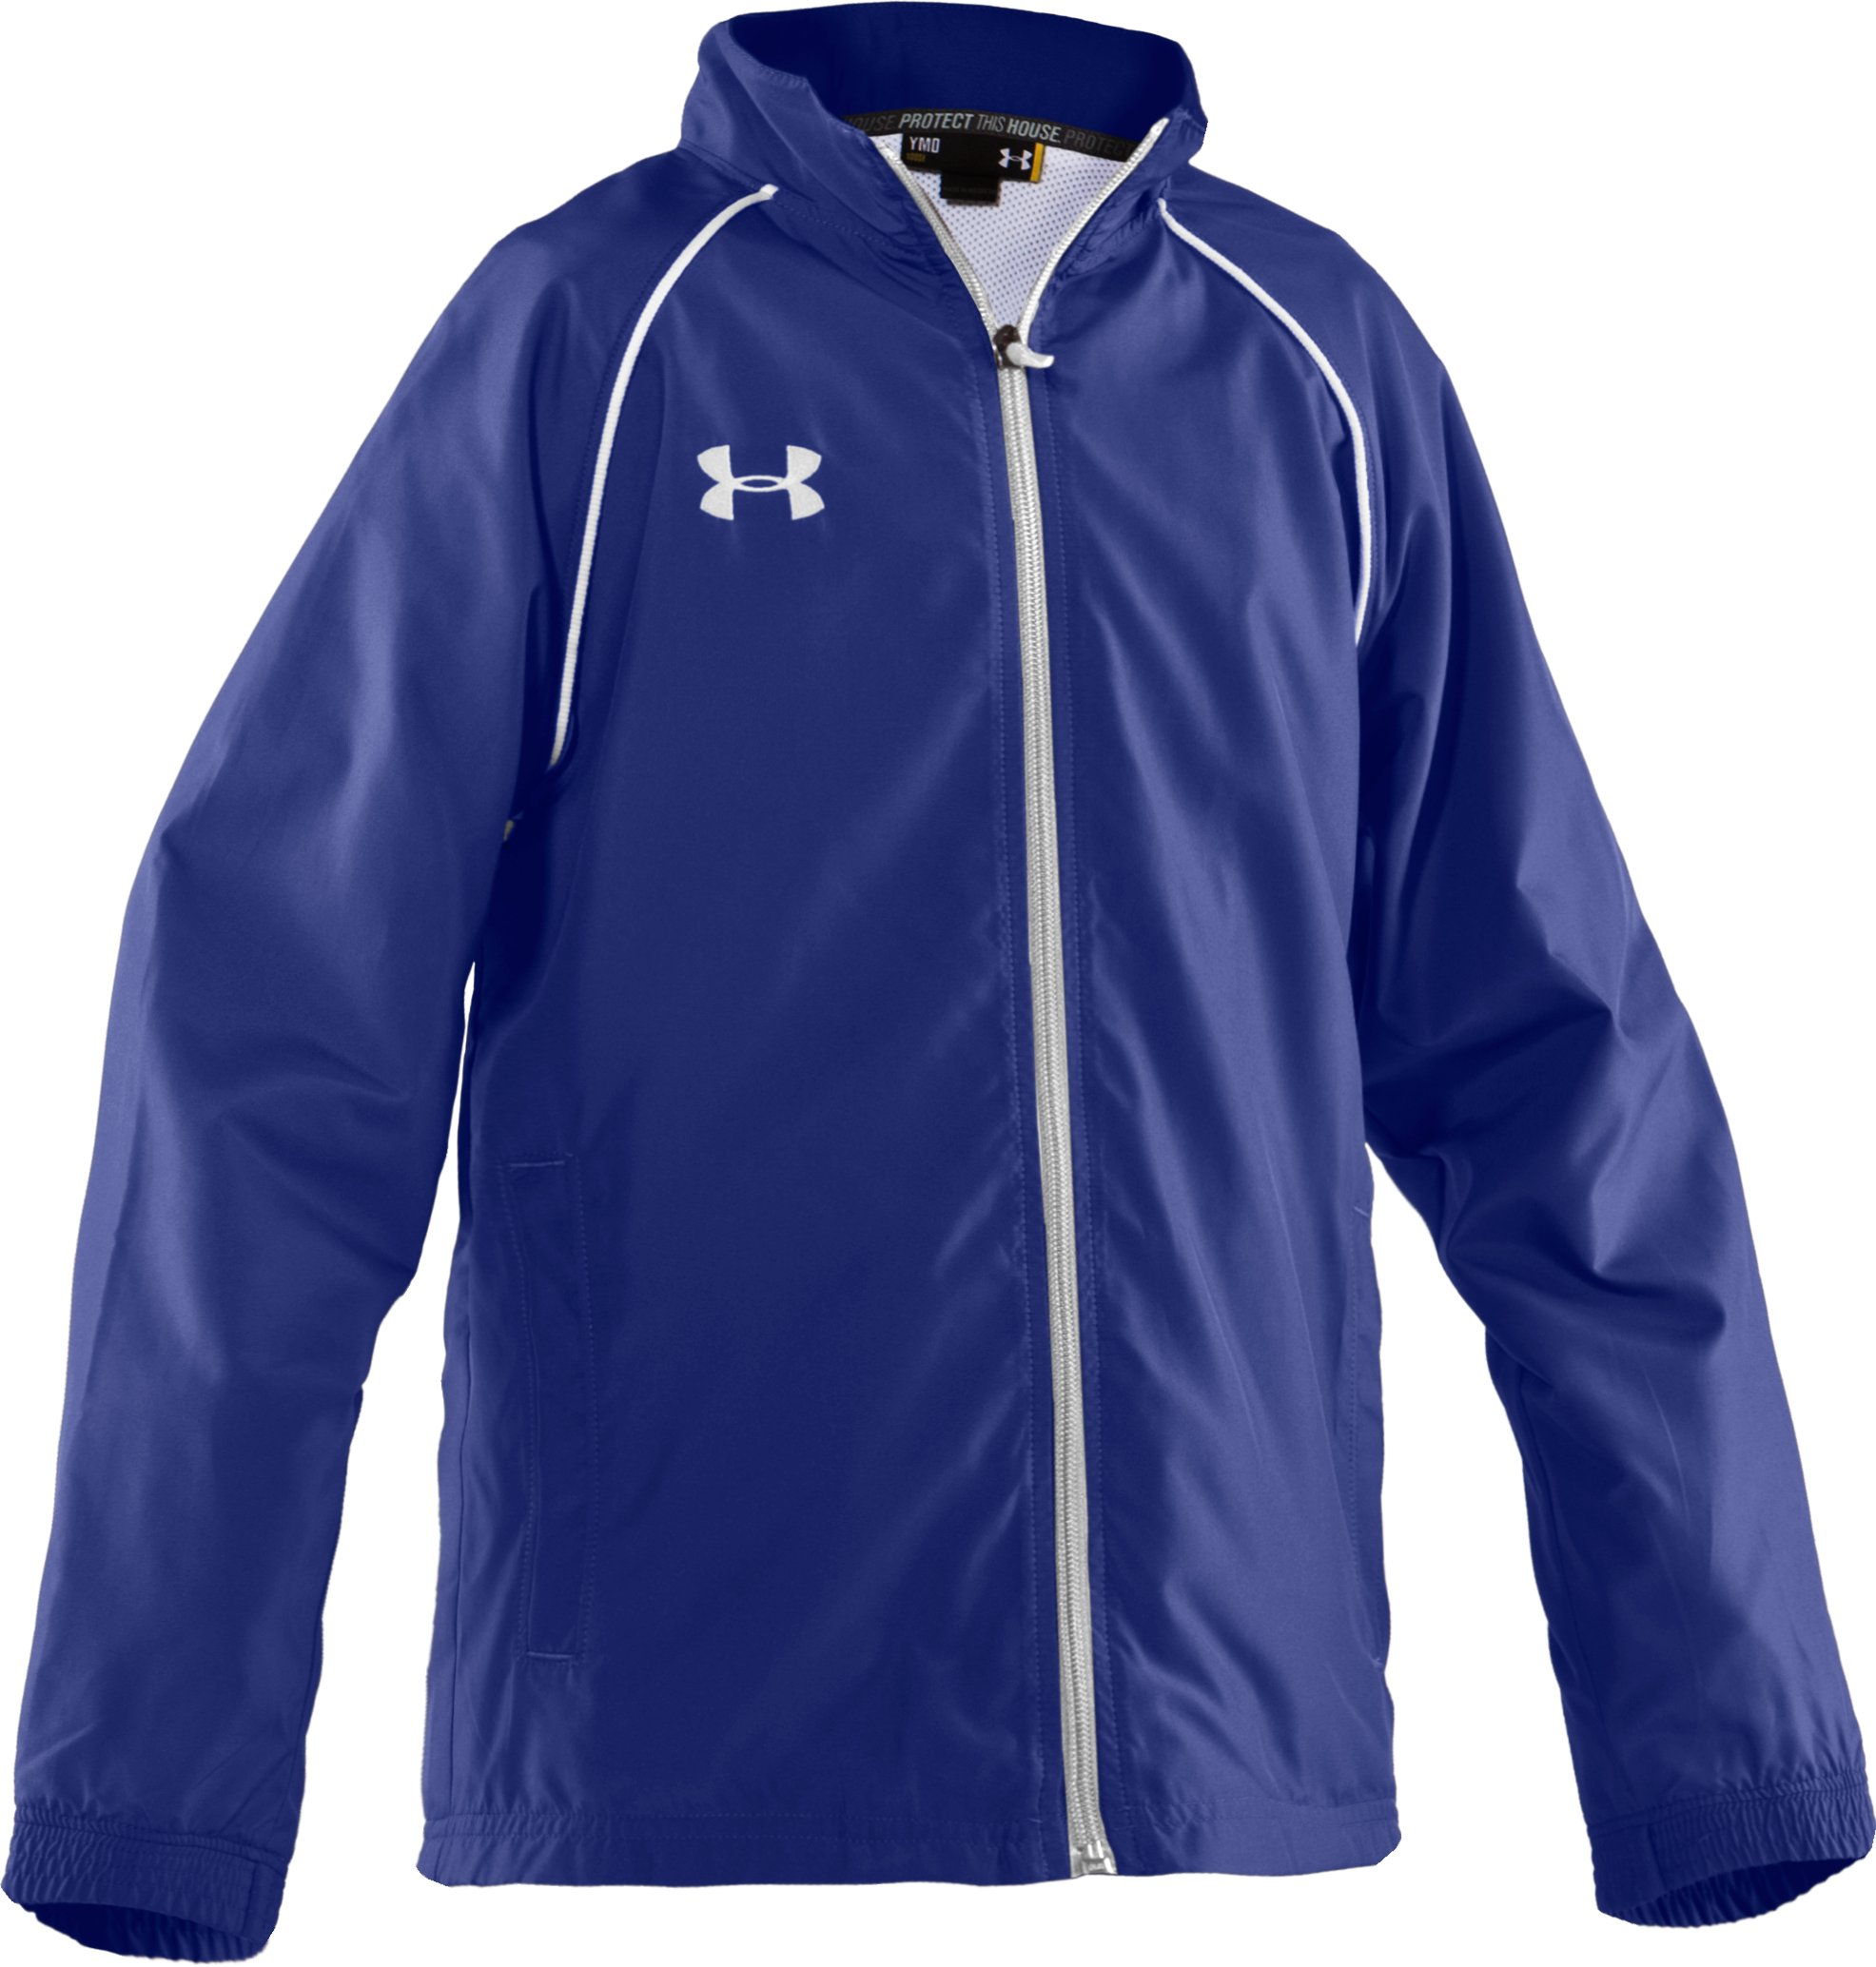 Boys' Advance Woven Warm-Up Jacket, Royal, undefined